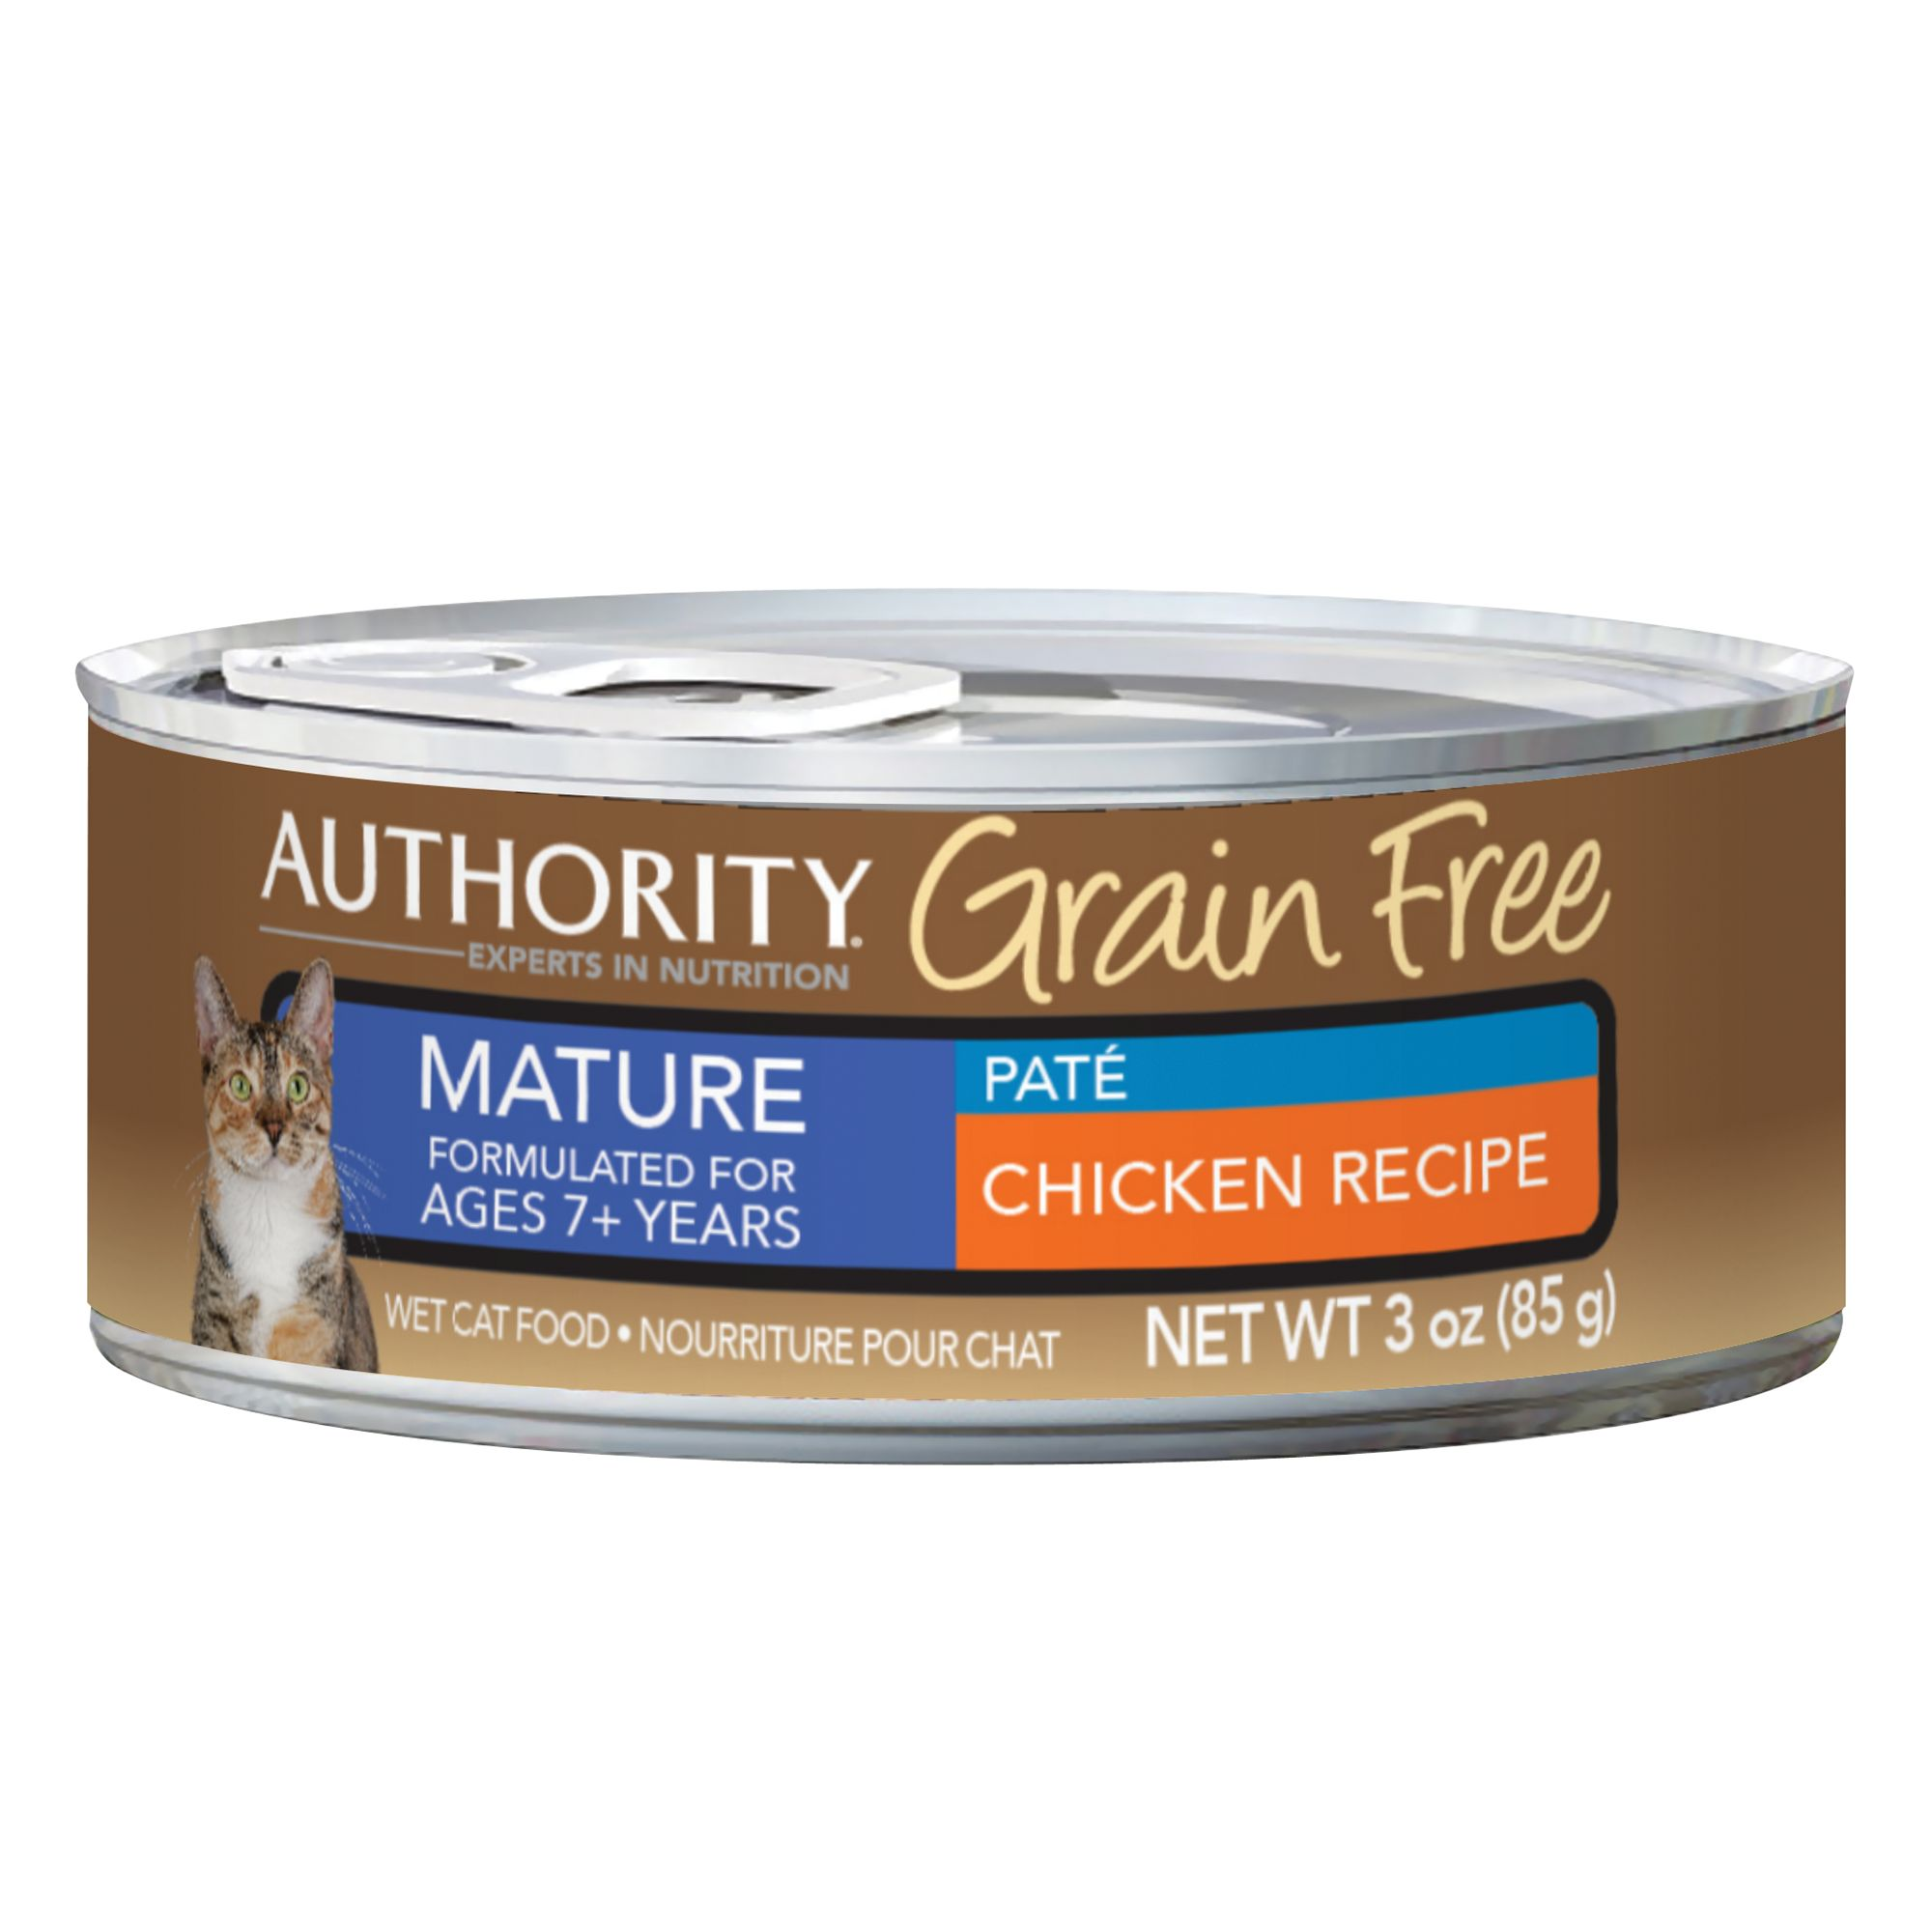 Authority® Grain Free Mature Cat Food - Chicken size: 3 Oz